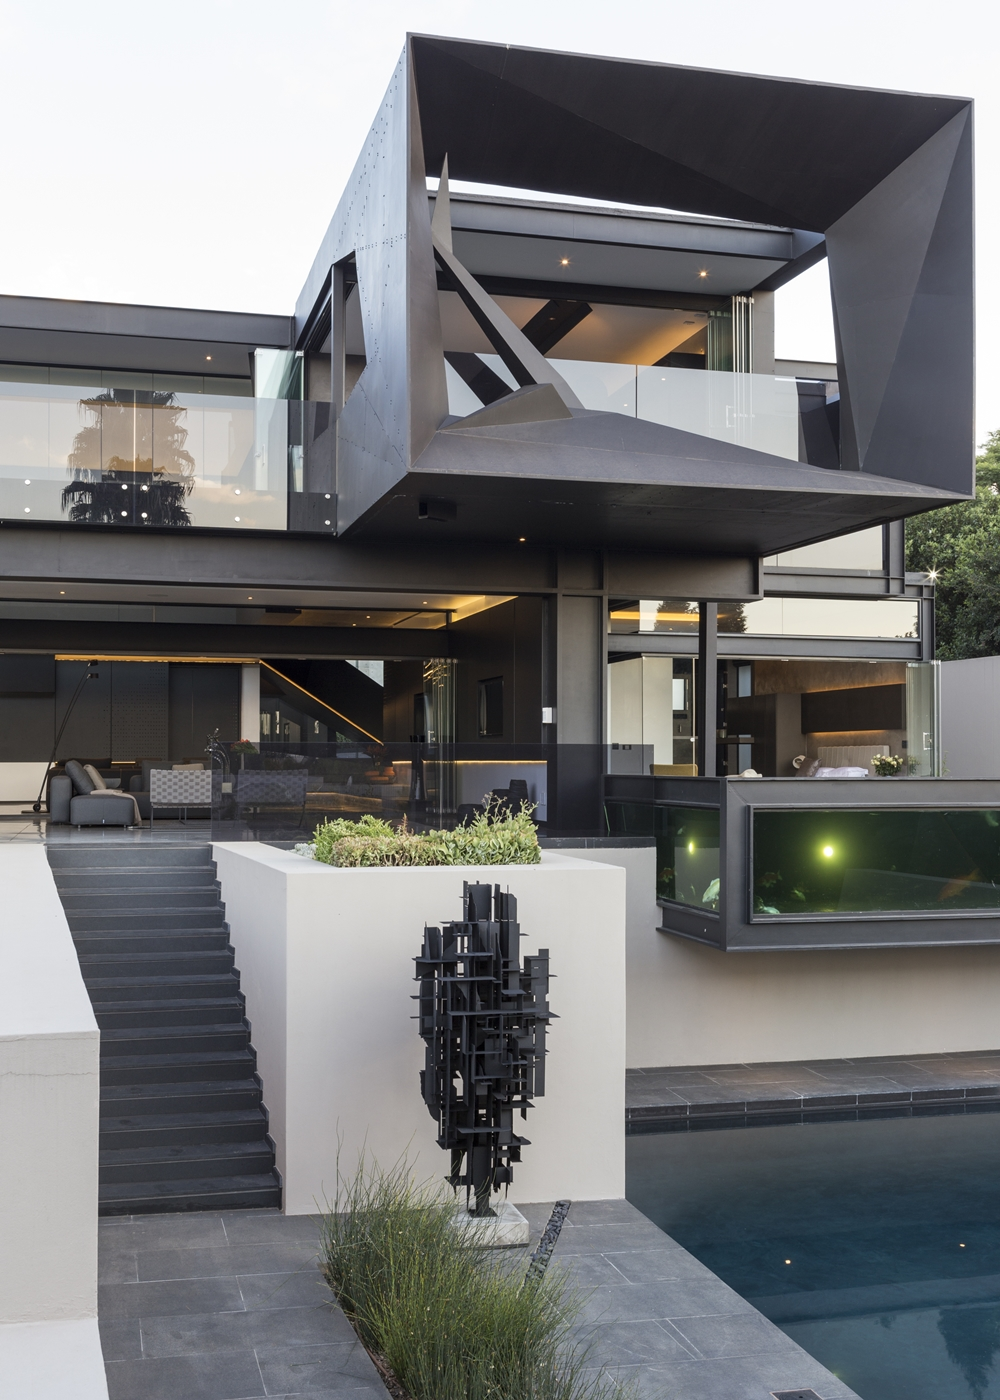 Best houses in the world amazing kloof road house for Amazing house designs